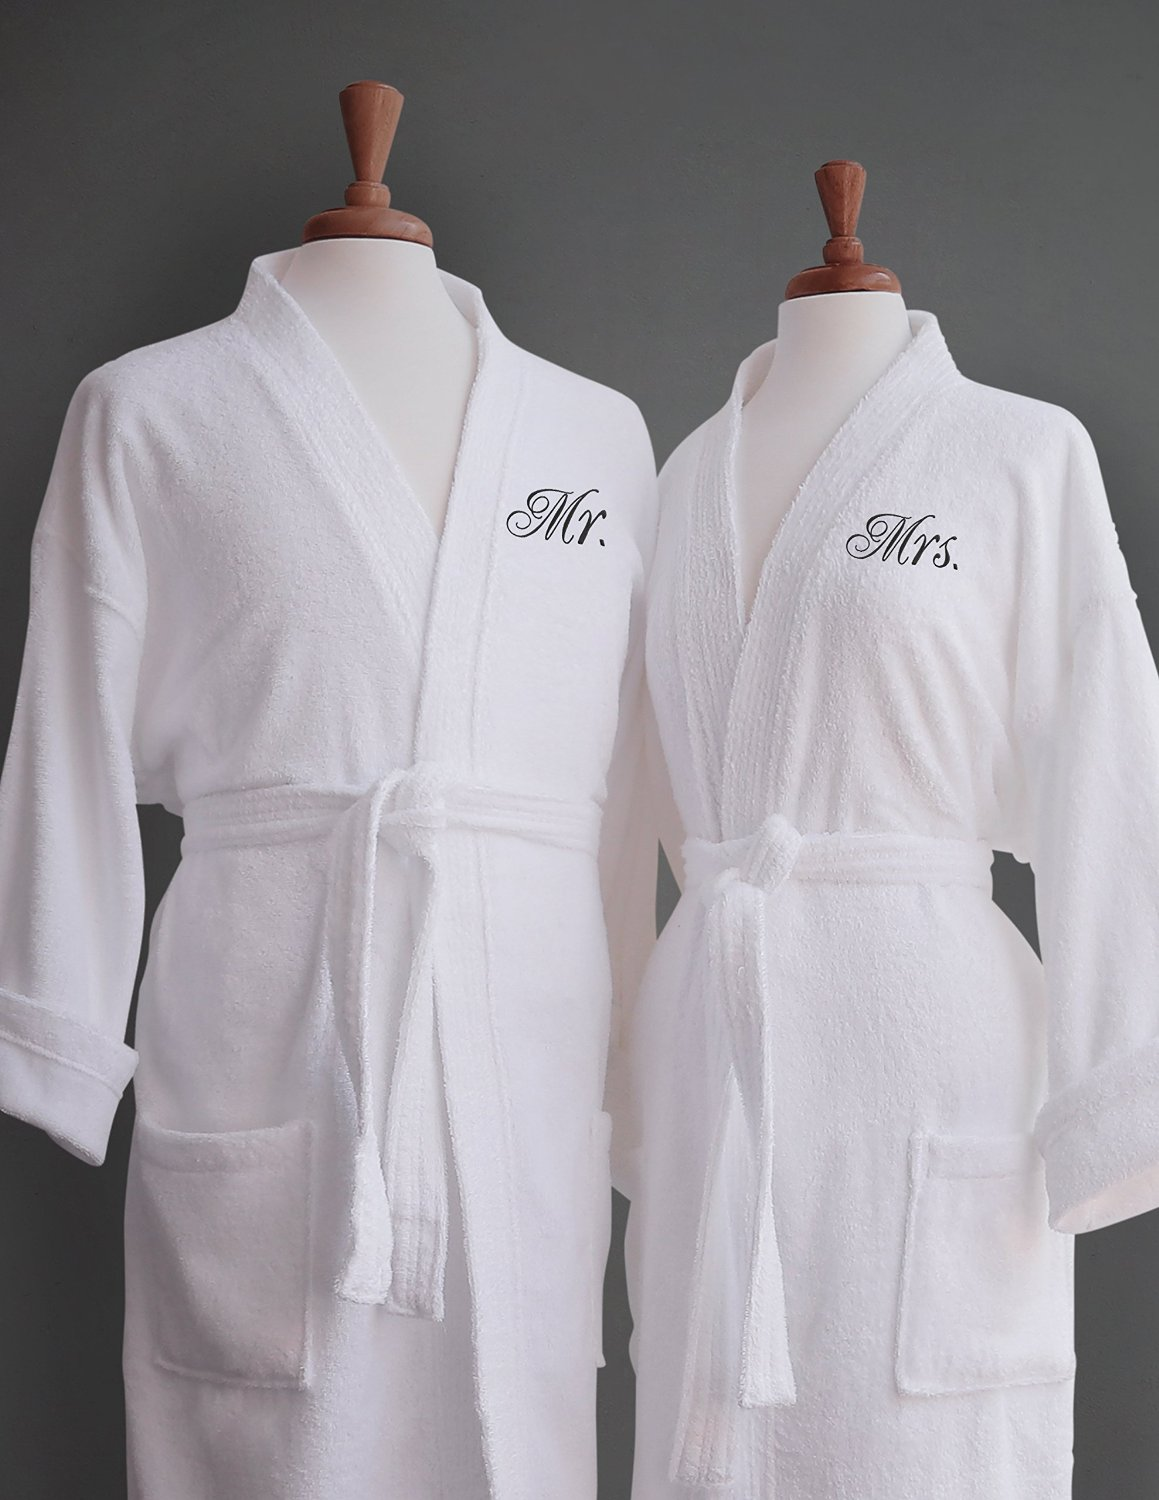 His & Her robes